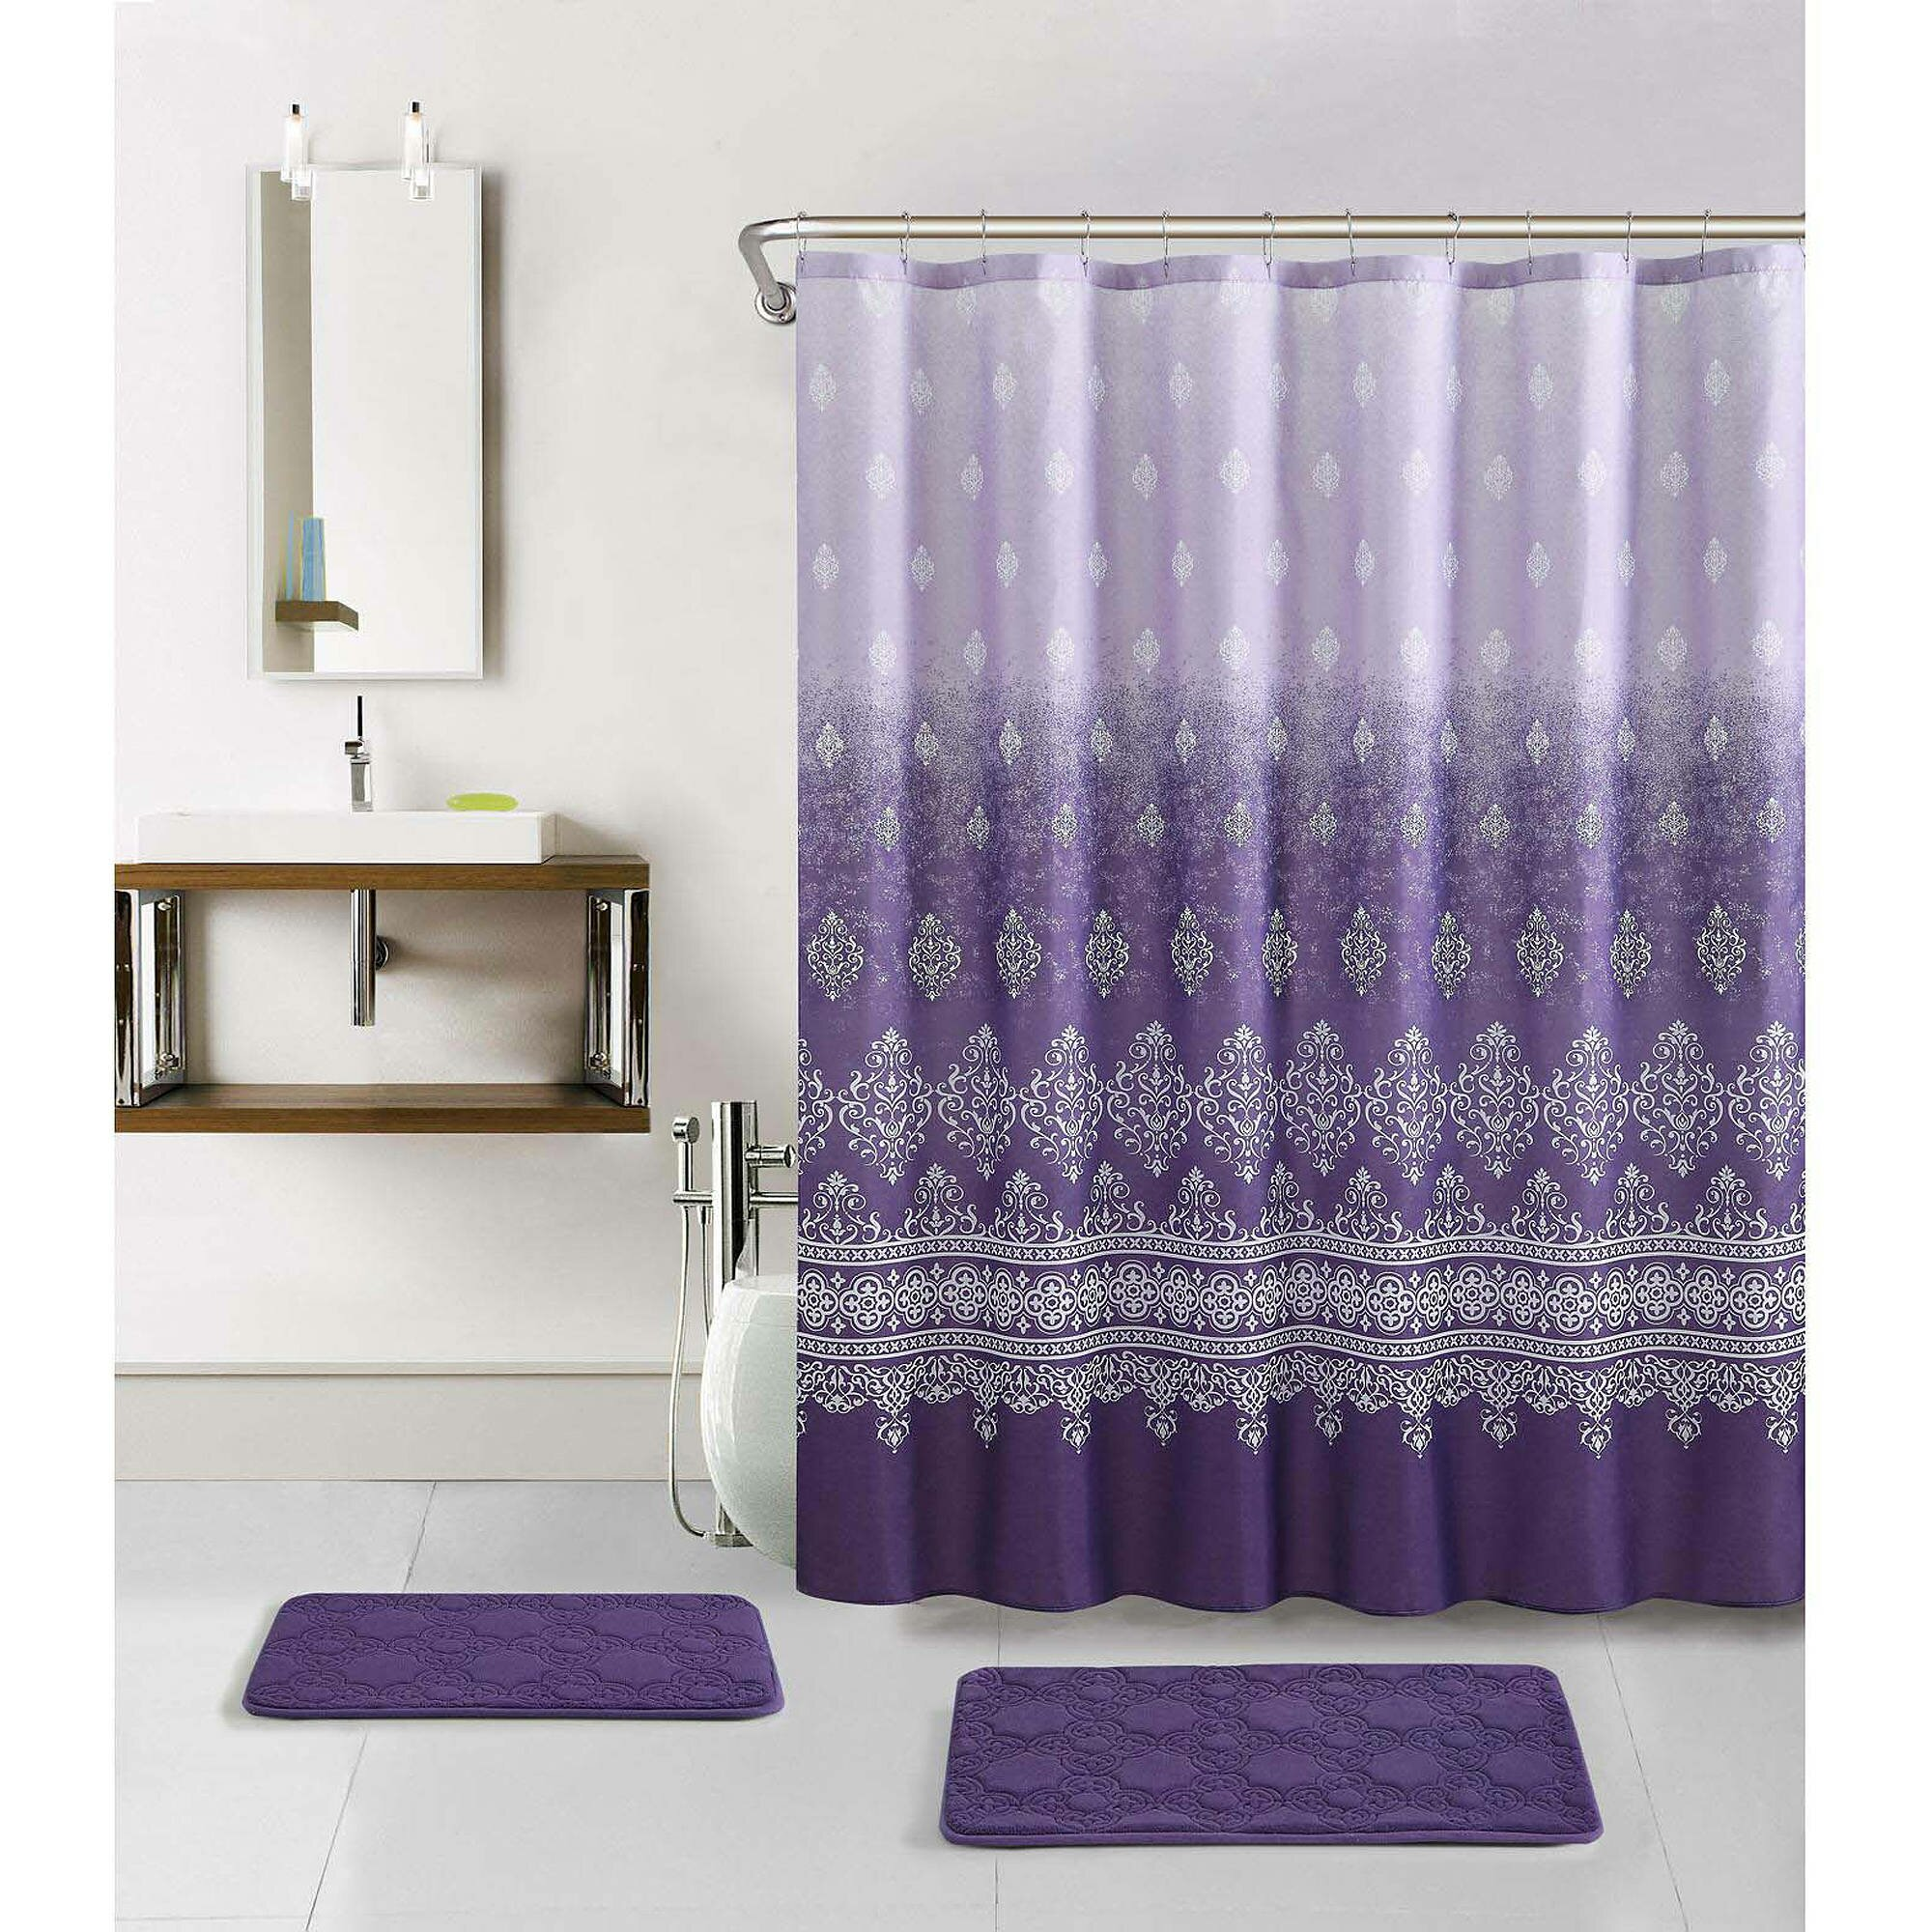 Curtain: Cheap Fabric Shower Curtain | Walmart Shower Curtain ...